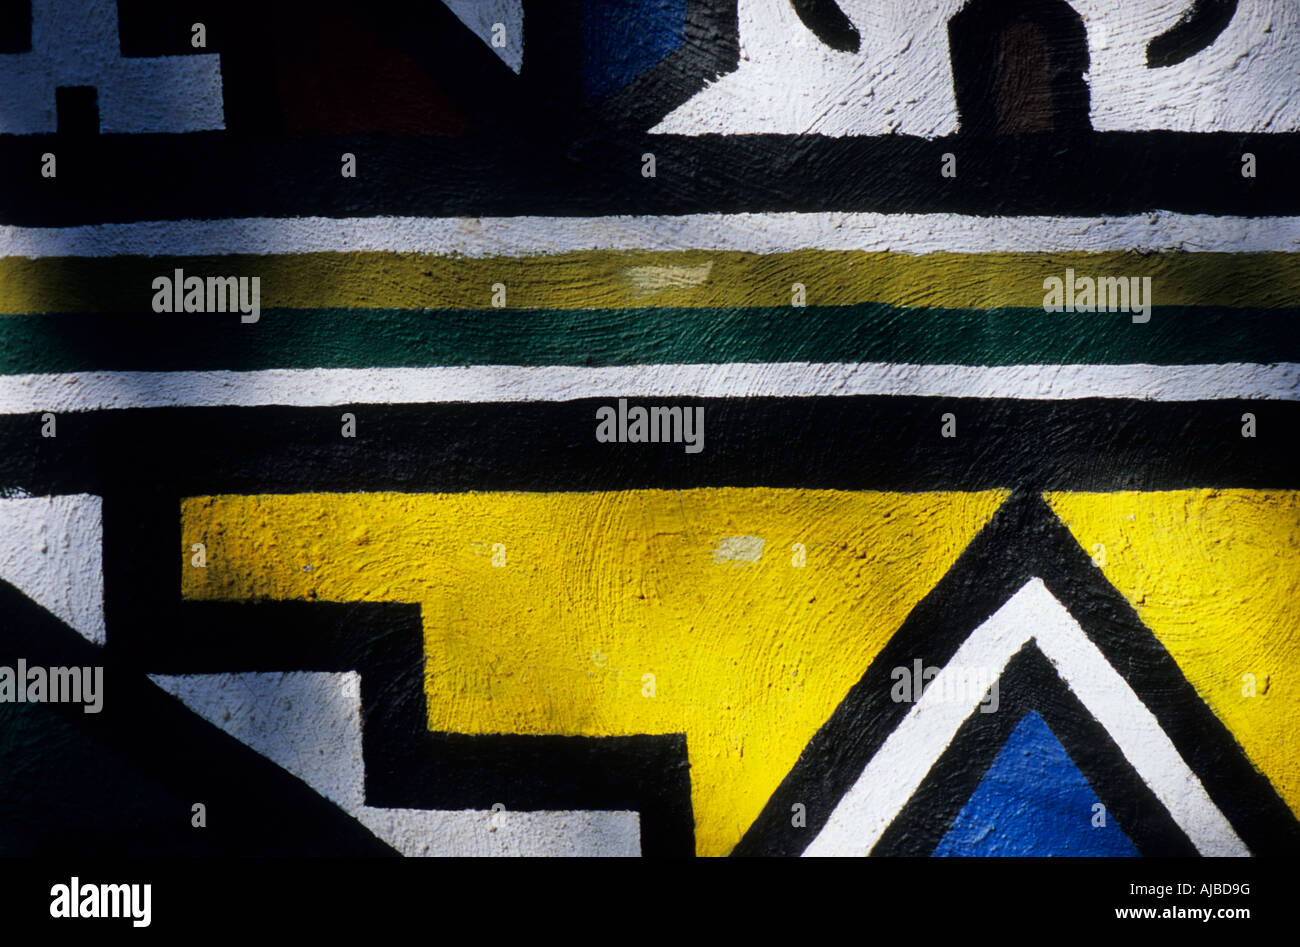 Close-up colourful painted geometric patterns on wall Traditional ...